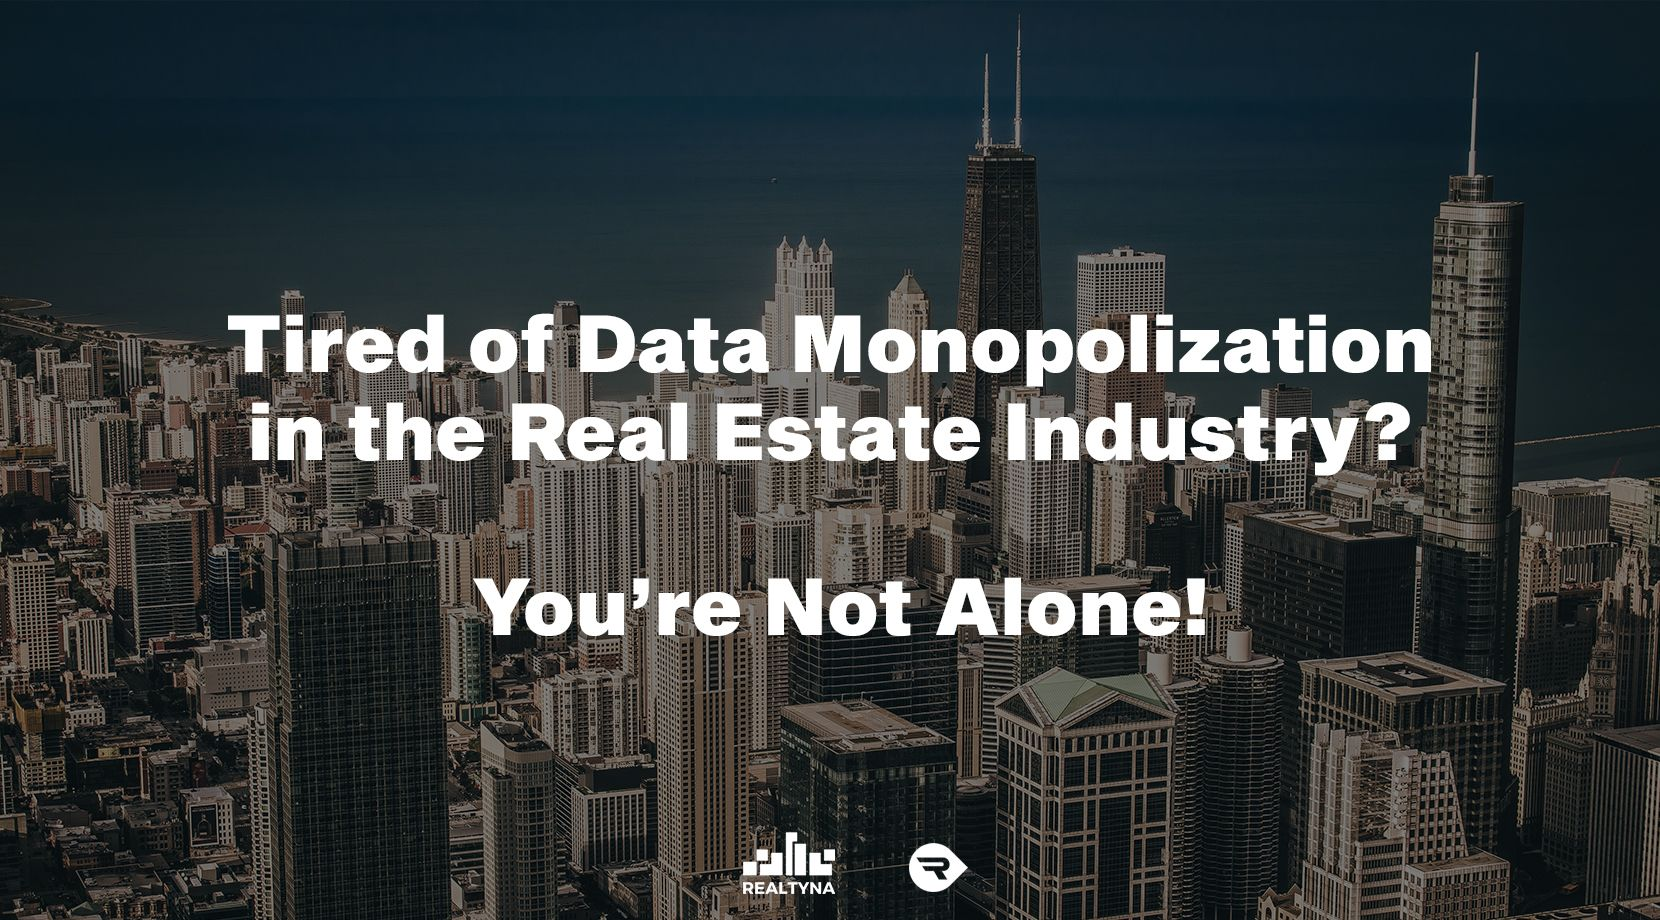 Tired of Data Monopolization in the Real Estate Industry? You're Not Alone!